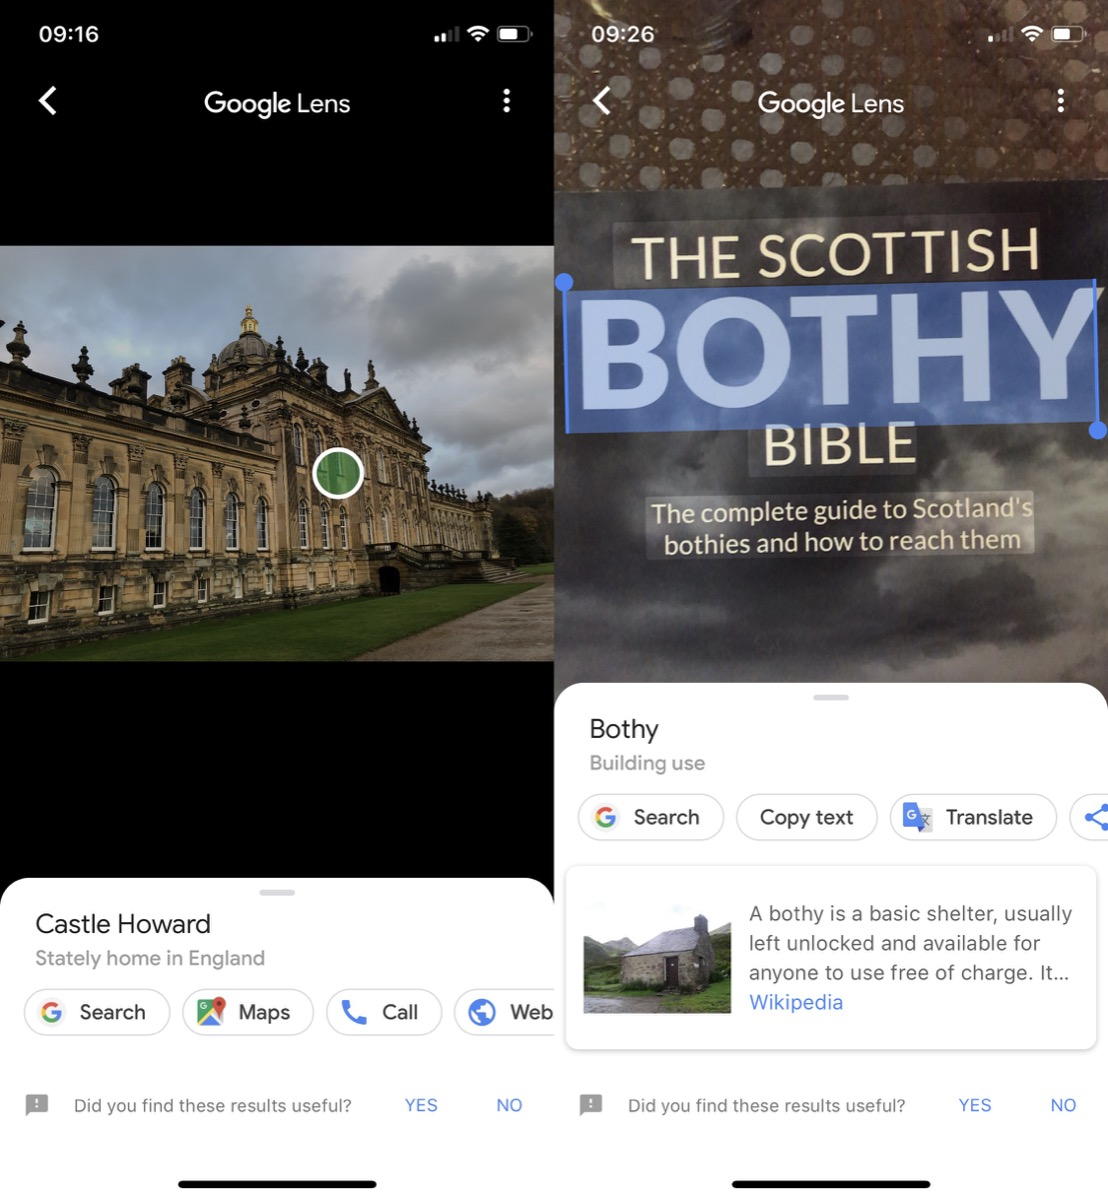 How to Use Google Lens on iPhone - MacRumors